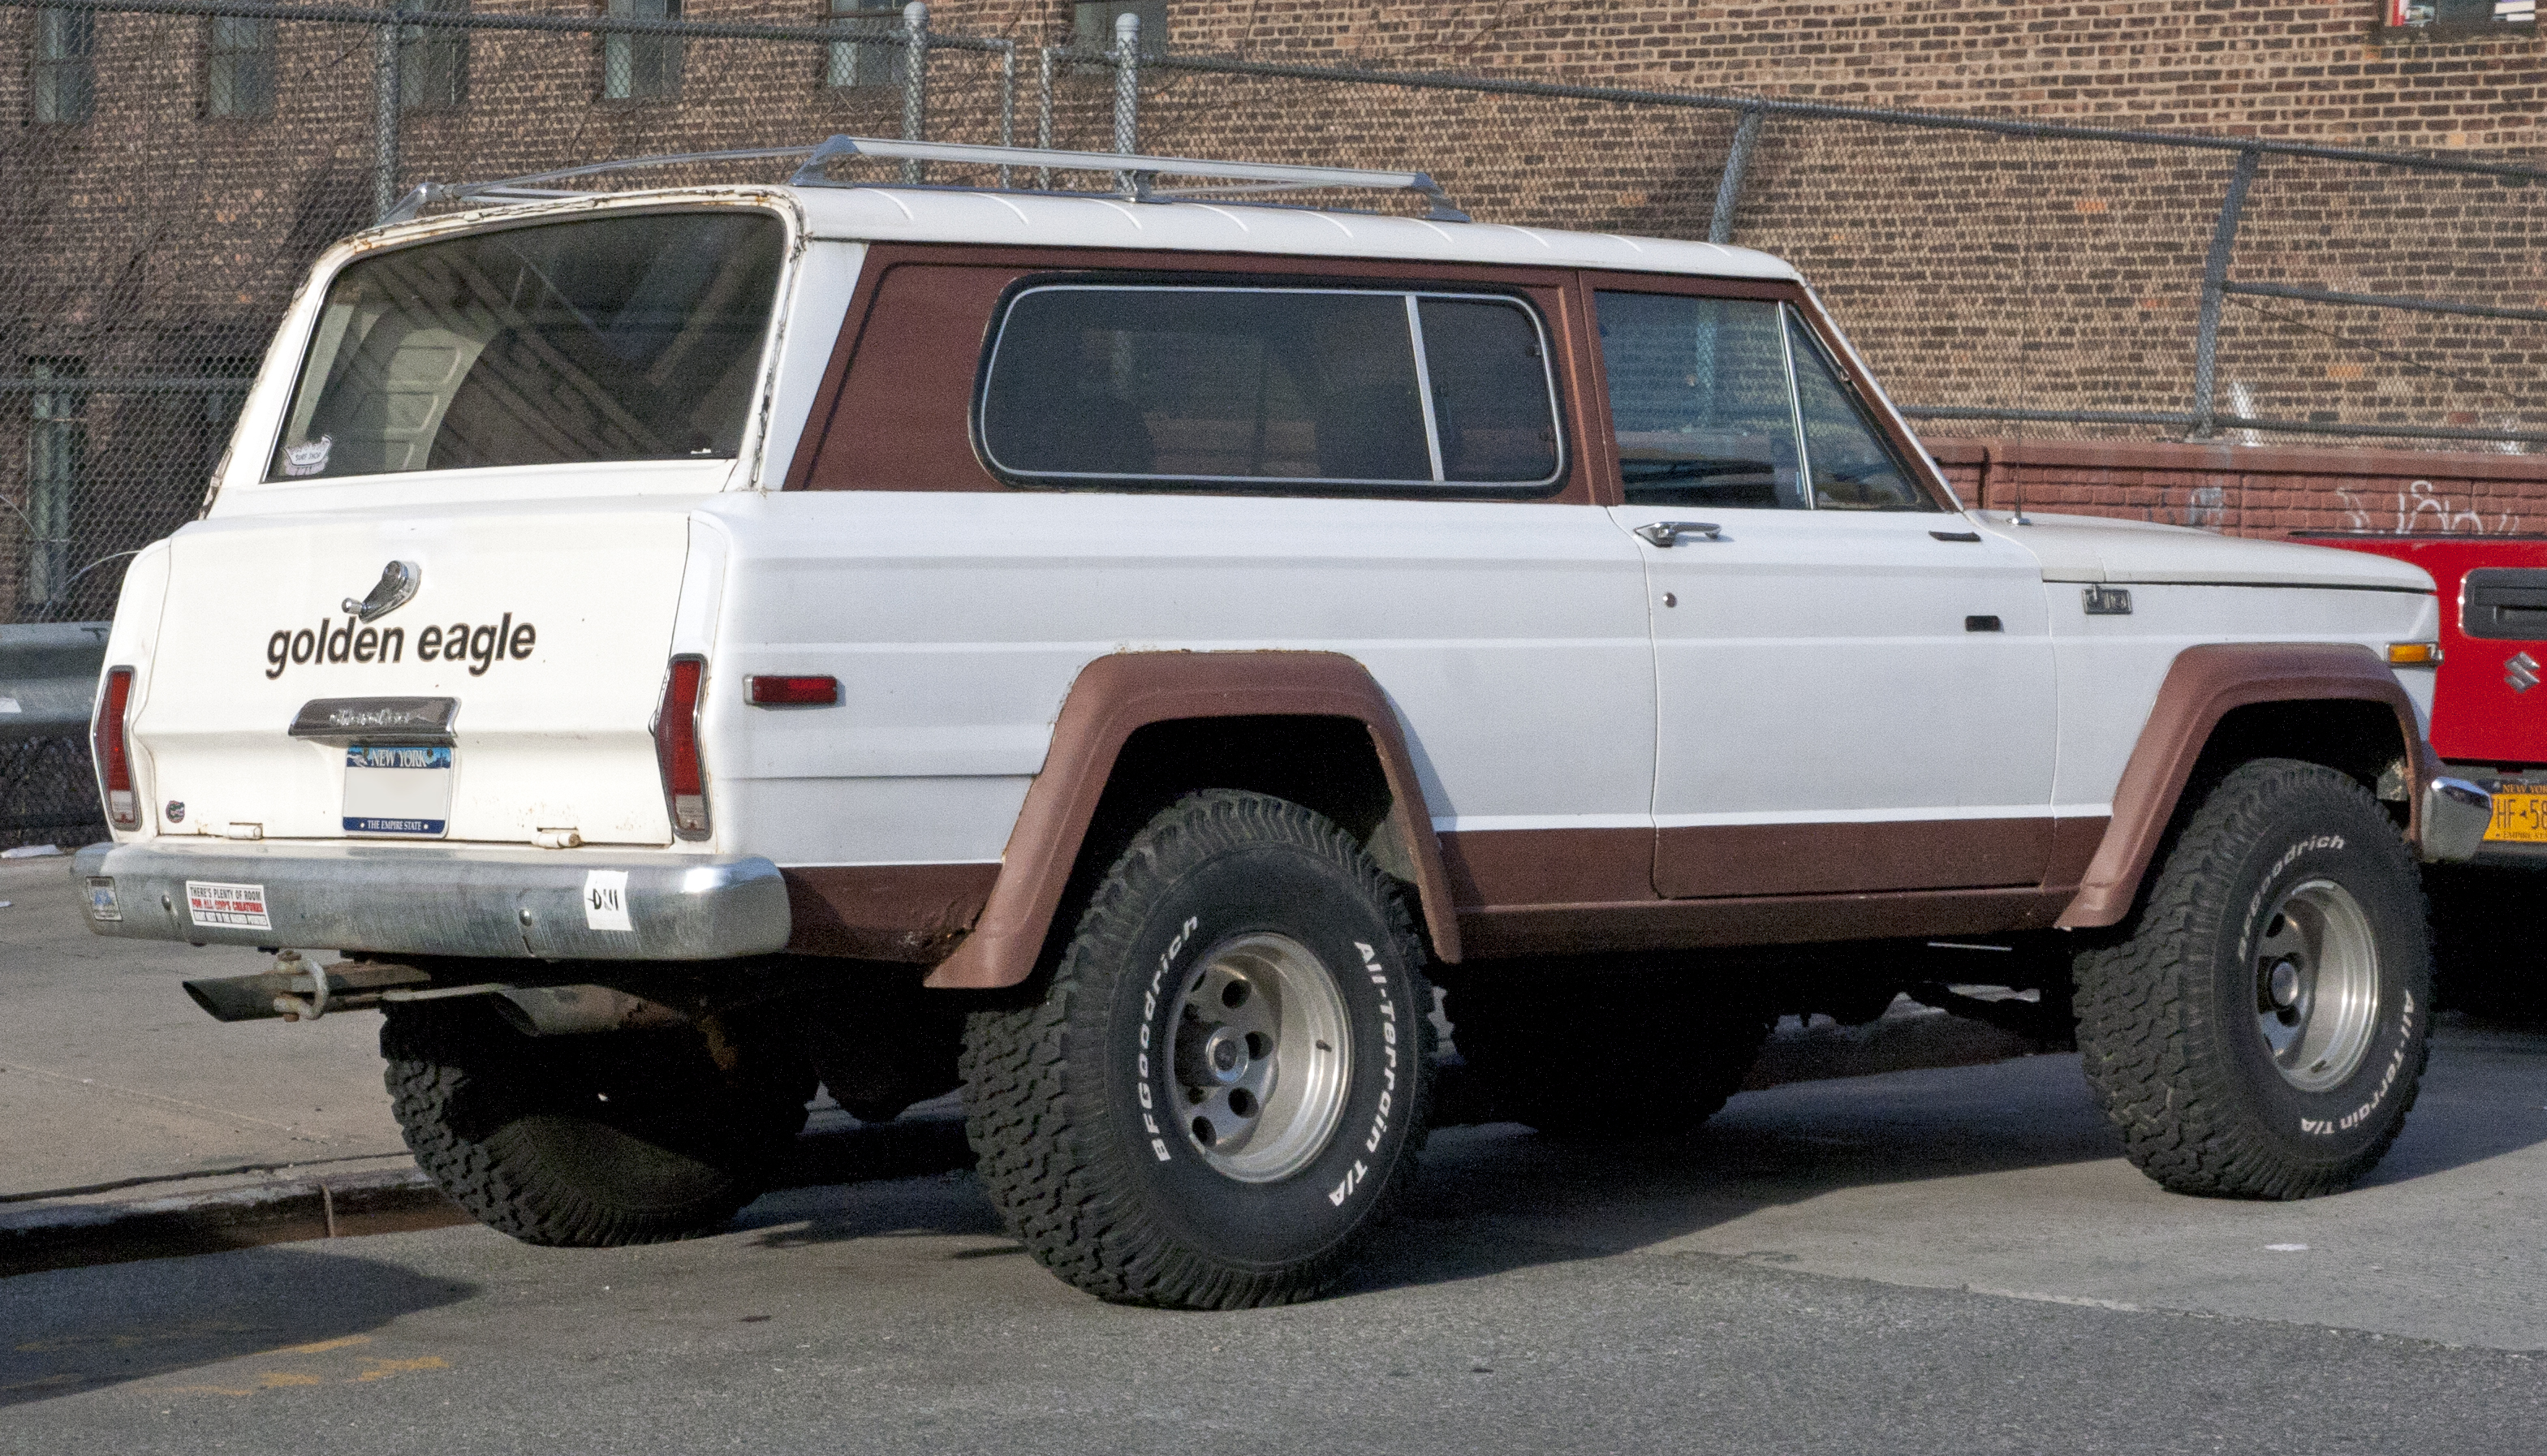 C13171 also Sale likewise Vehicle Fuse Box also Diagram view in addition P 0900c1528004b198. on 1981 jeep cherokee